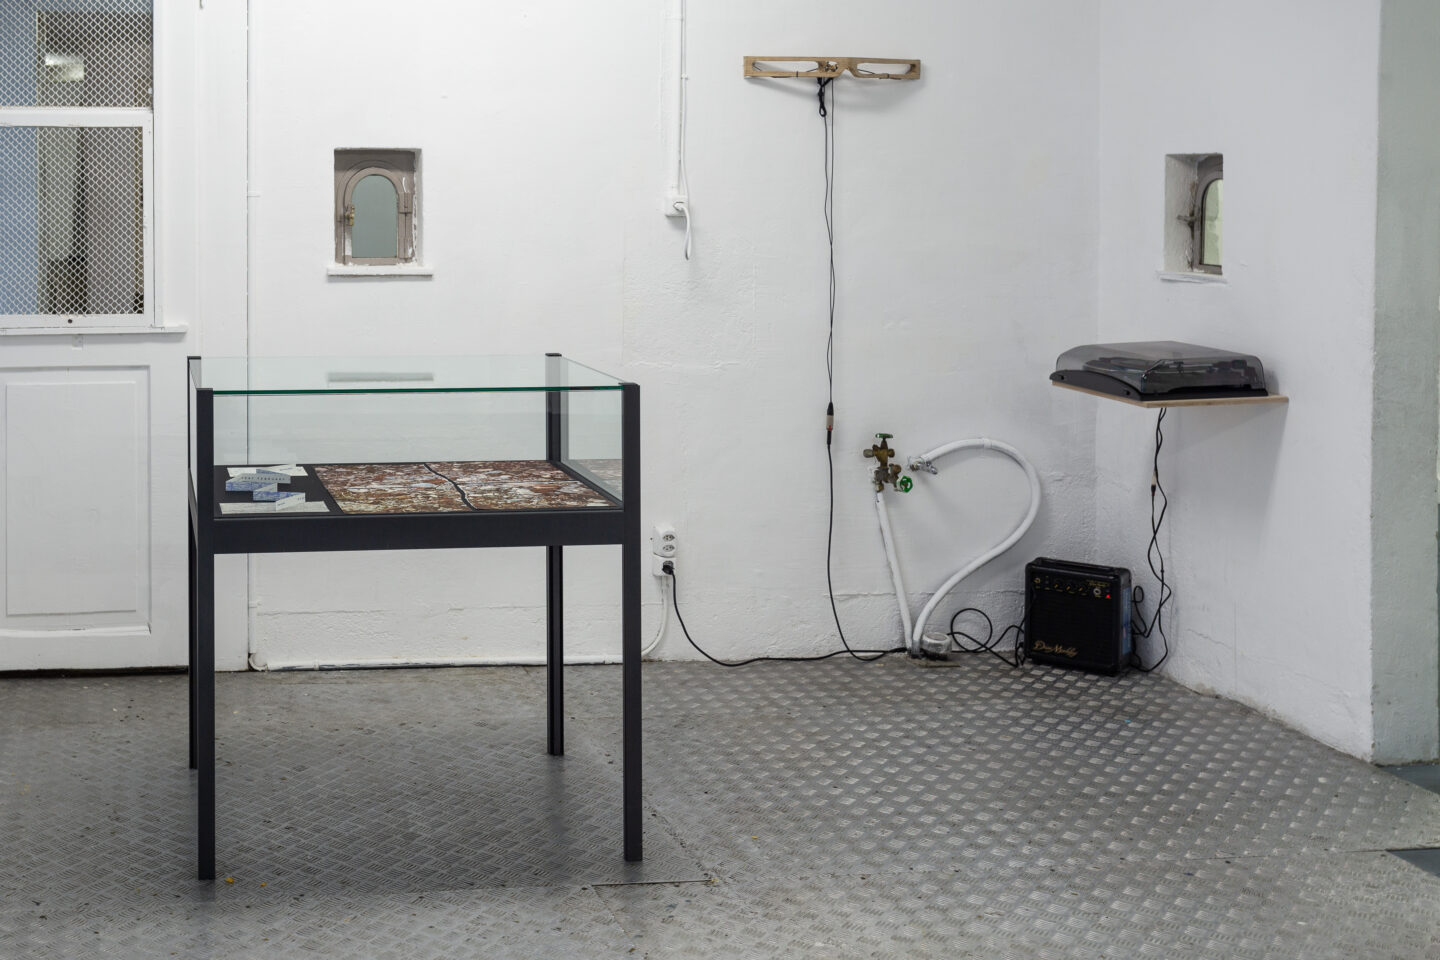 Exhibition View Groupshow «The Big Rip. Bounce, Chill or Crunch?; view on Robert Smithson, Ephemera with invitation cards (detail), 1969 and Aline Zeltner, Sound Object, 2010» at Last Tango, Zurich, 2019 / Photo: Kilian Bannwart / Courtesy: the artist and Last Tango, Zurich